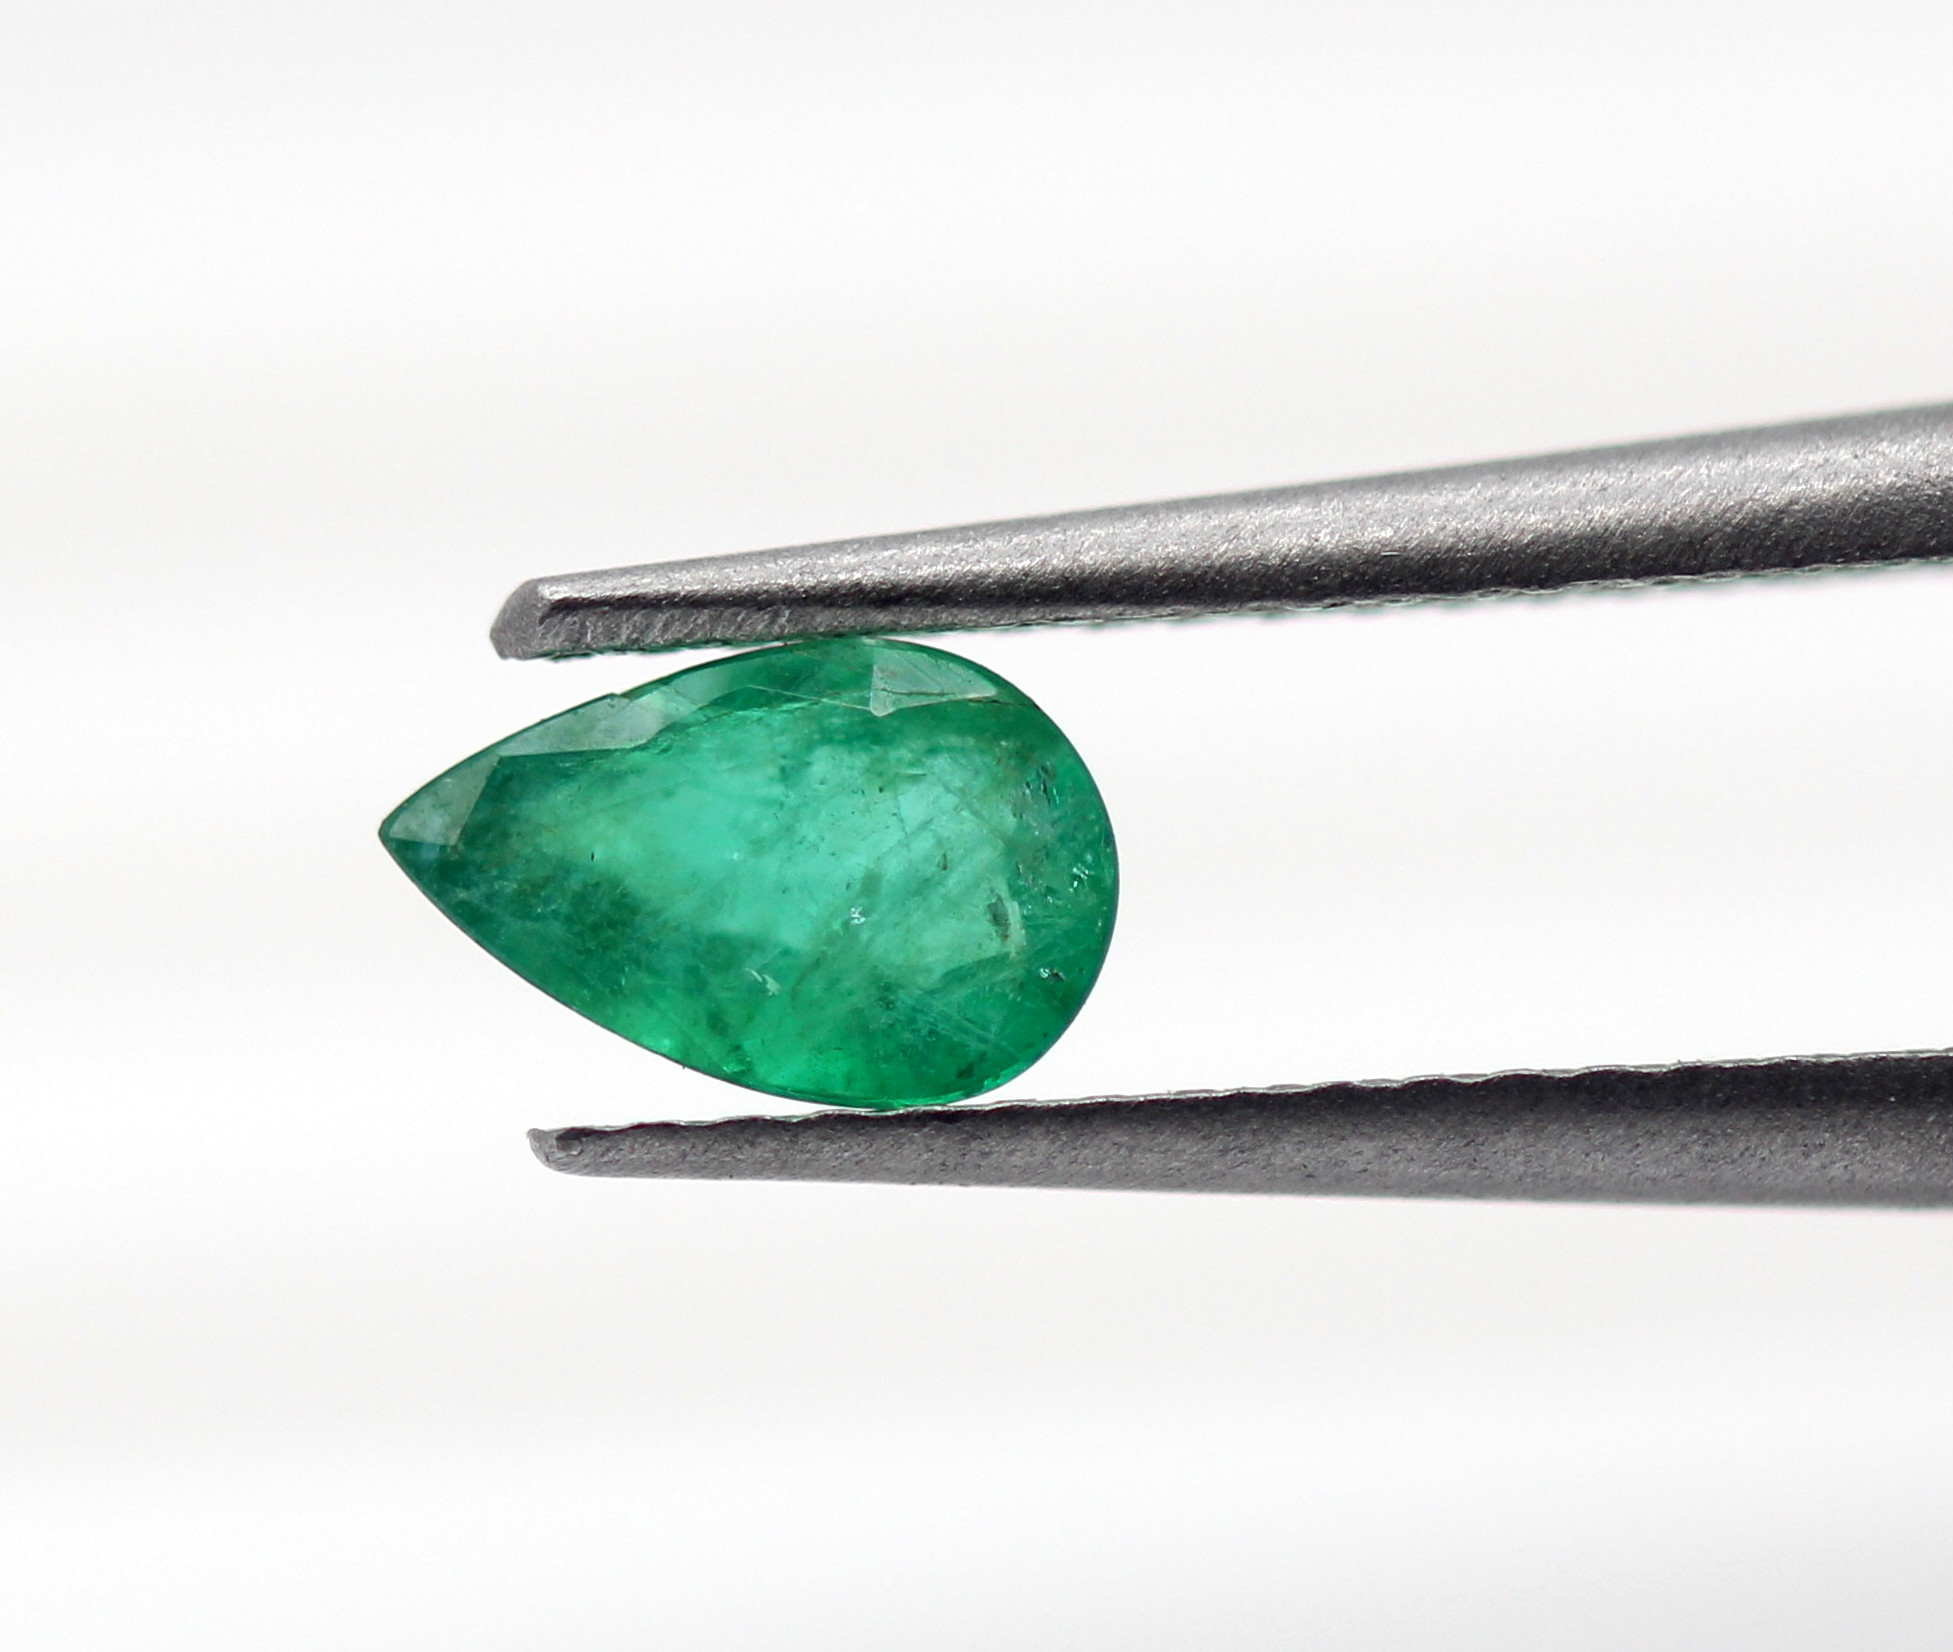 0.46 Ct Emerald Natural Gemstone Pear Shape Good Green Color Zambia Certified